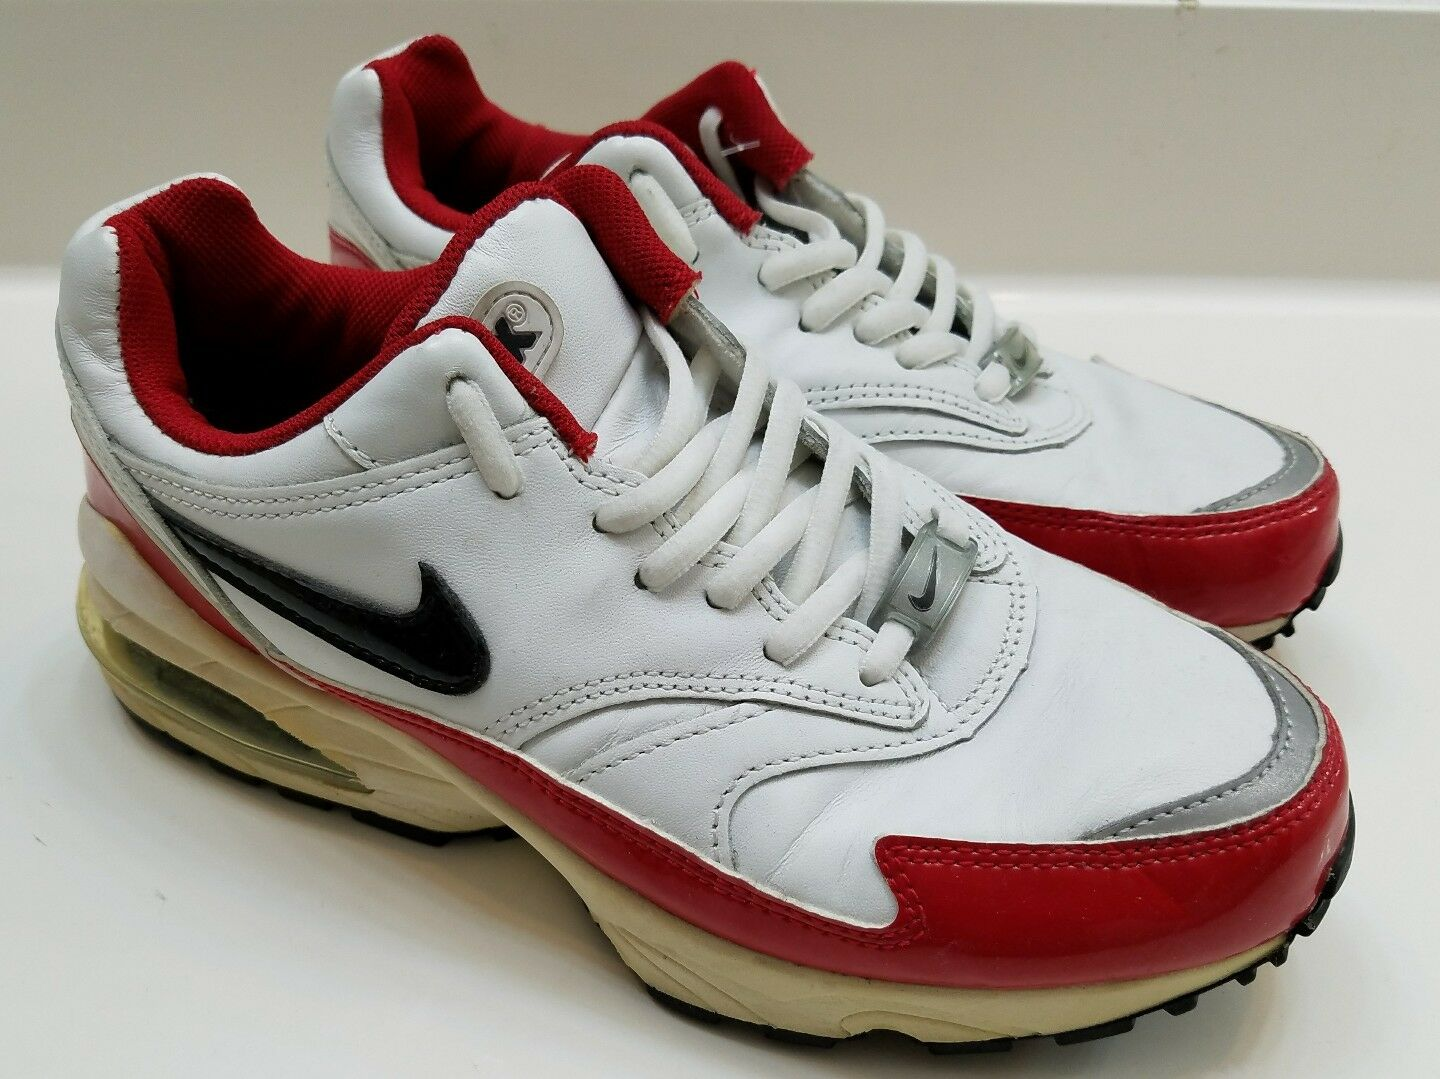 Nike Air Burst Patent Leather  Cheap and fashionable